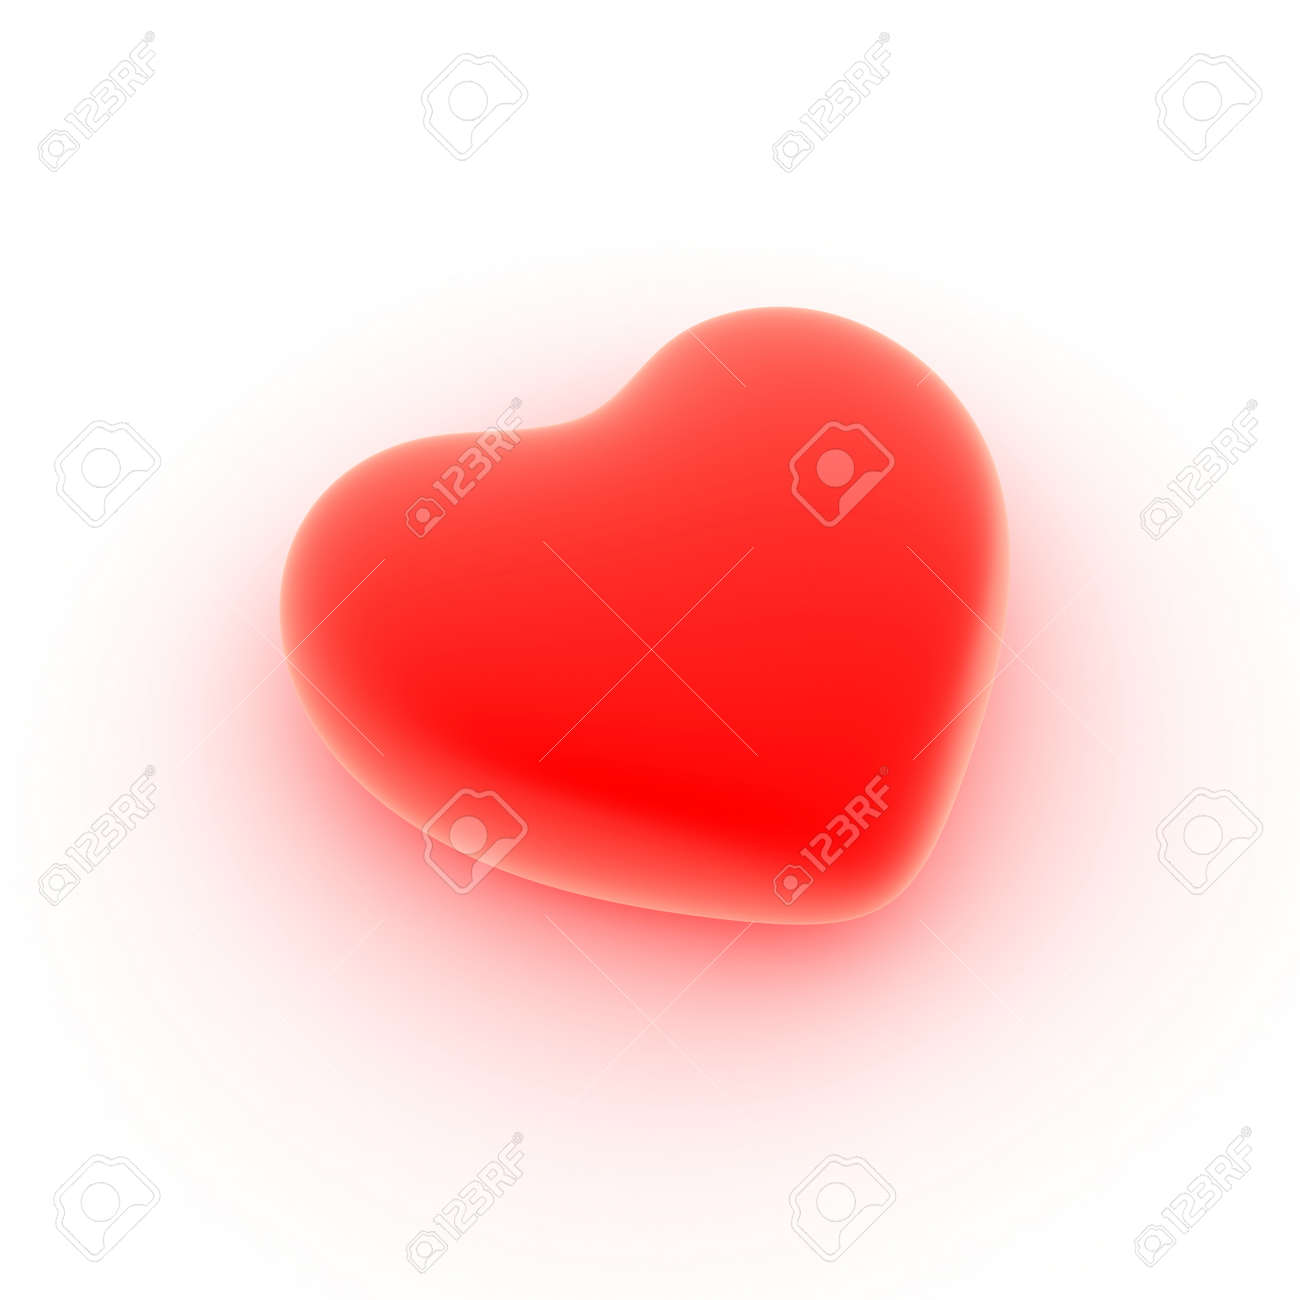 Perfect heart flaring from love, close up on a white background. Stock Photo - 17167677